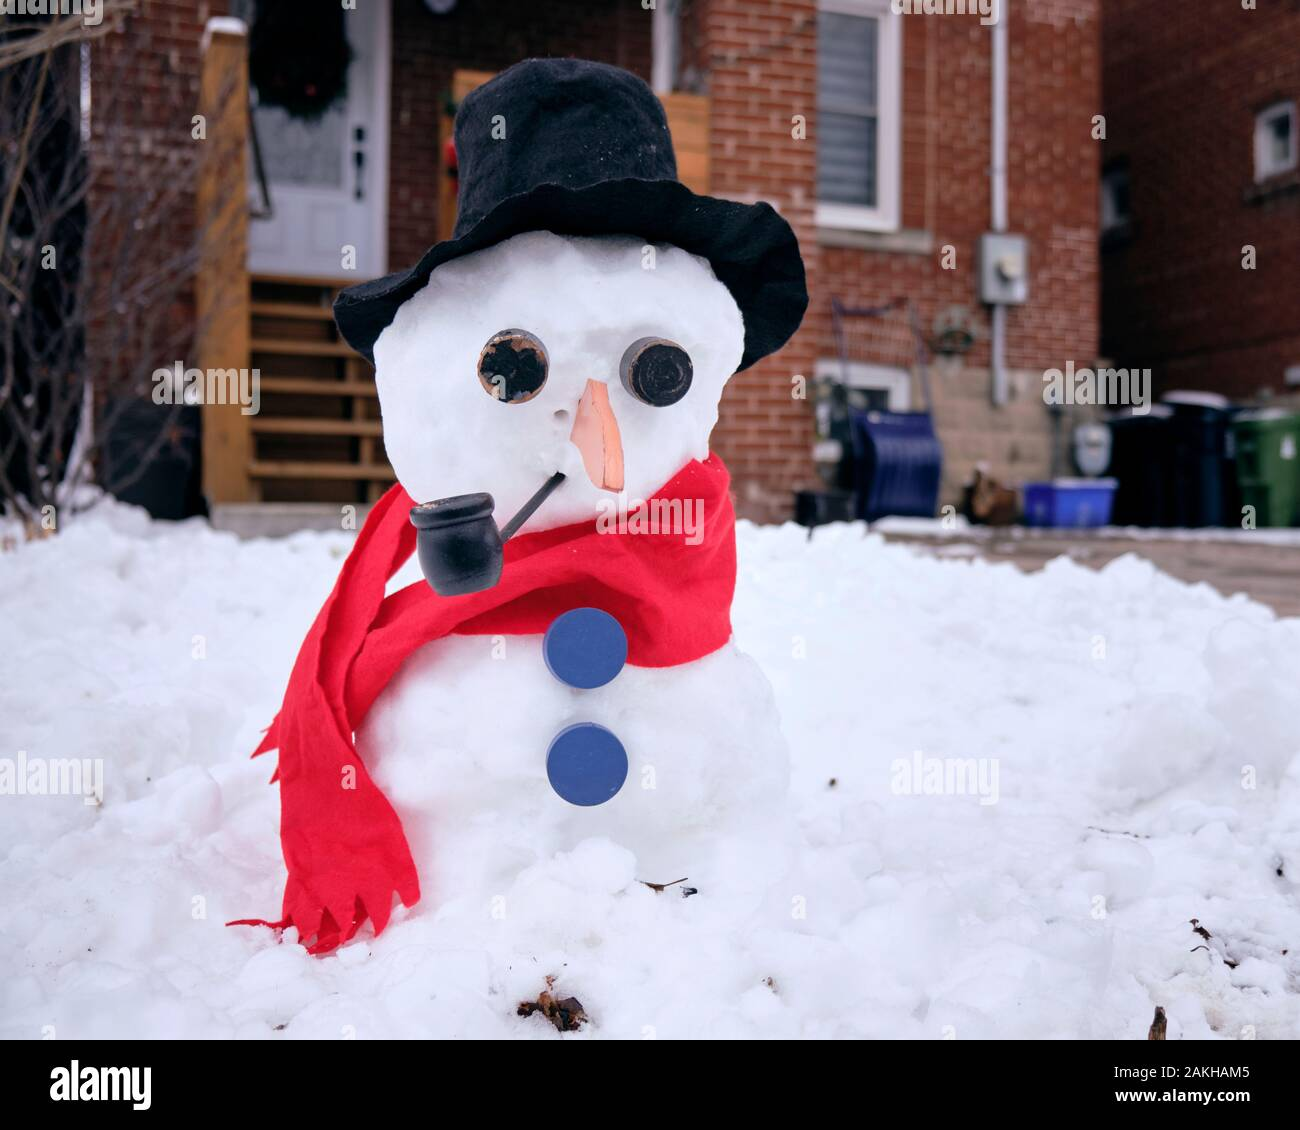 snowman-dressed-with-red-scarf-black-felt-hat-blue-buttons-smoking-a-pipe-in-front-of-leaside-residence-2AKHAM5.jpg